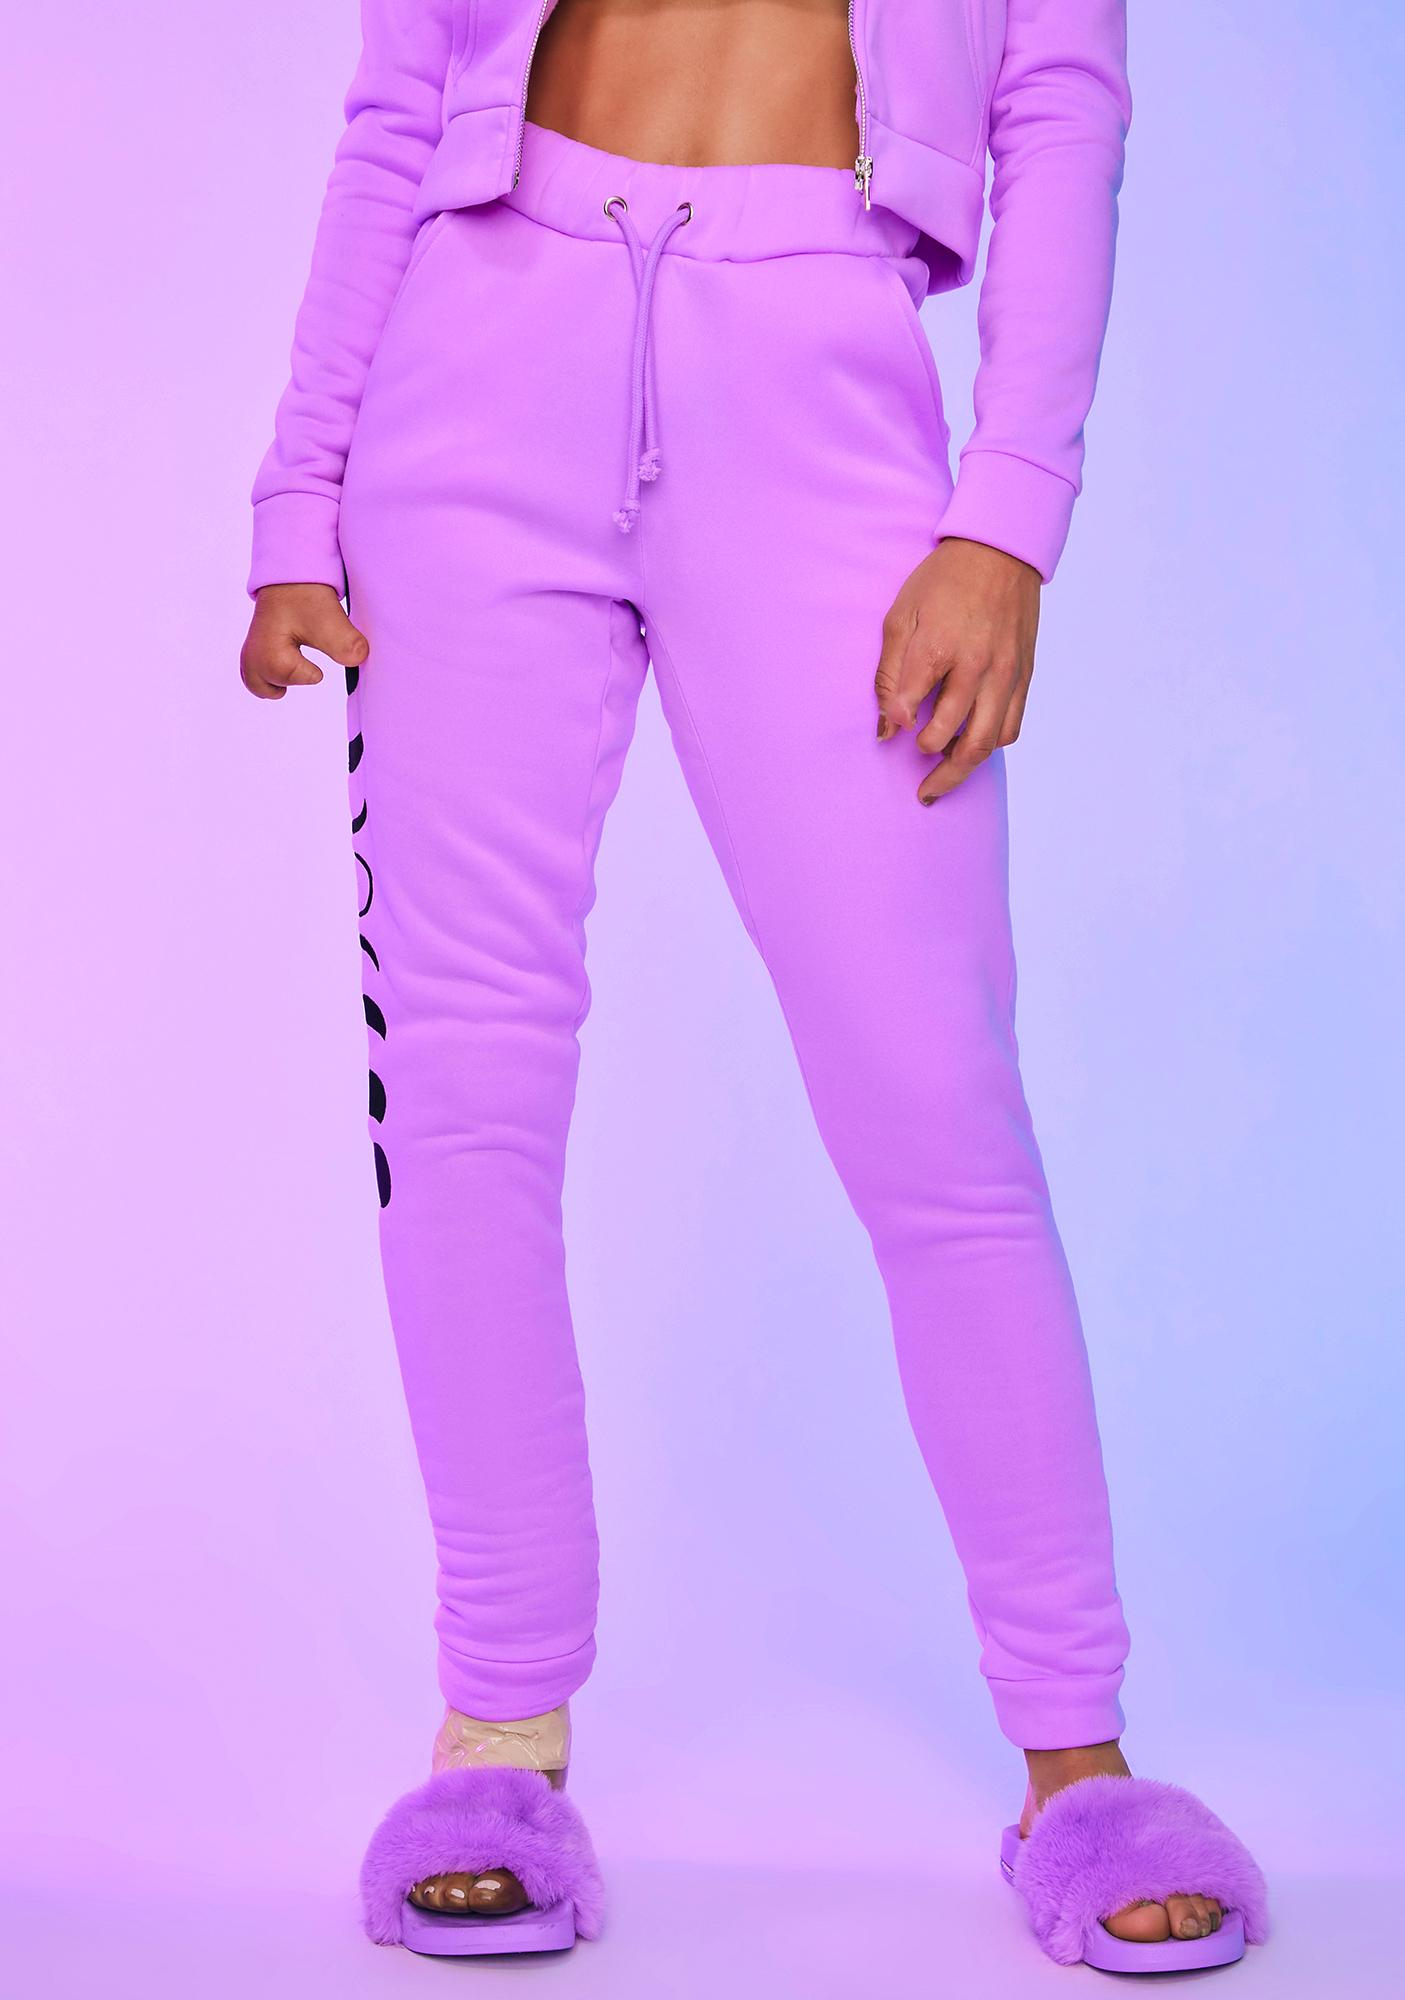 HOROSCOPEZ Psychic Player Pisces Joggers